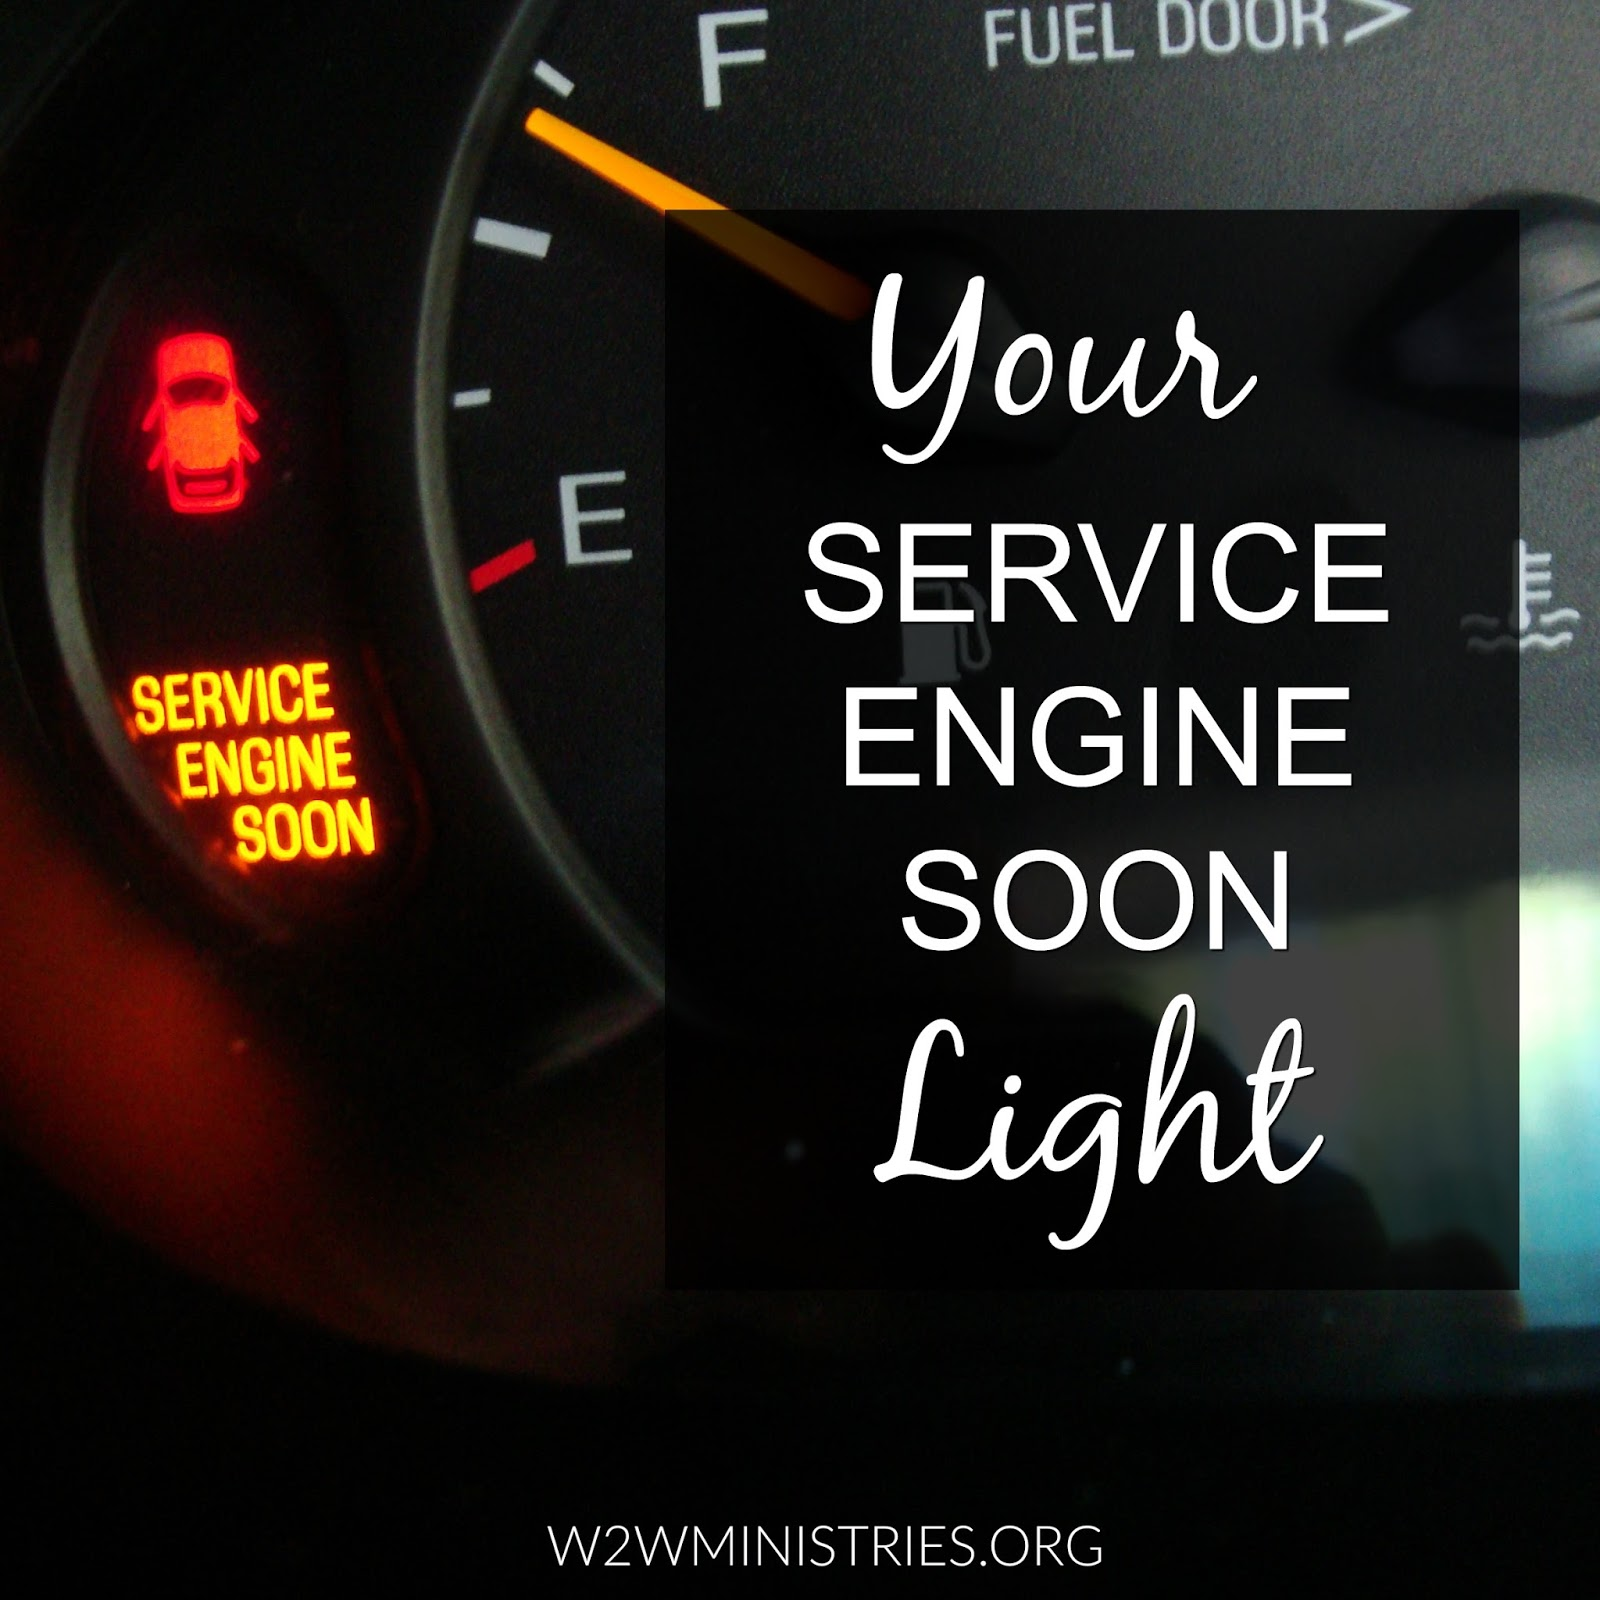 Woman To Woman: Service Engine Soon